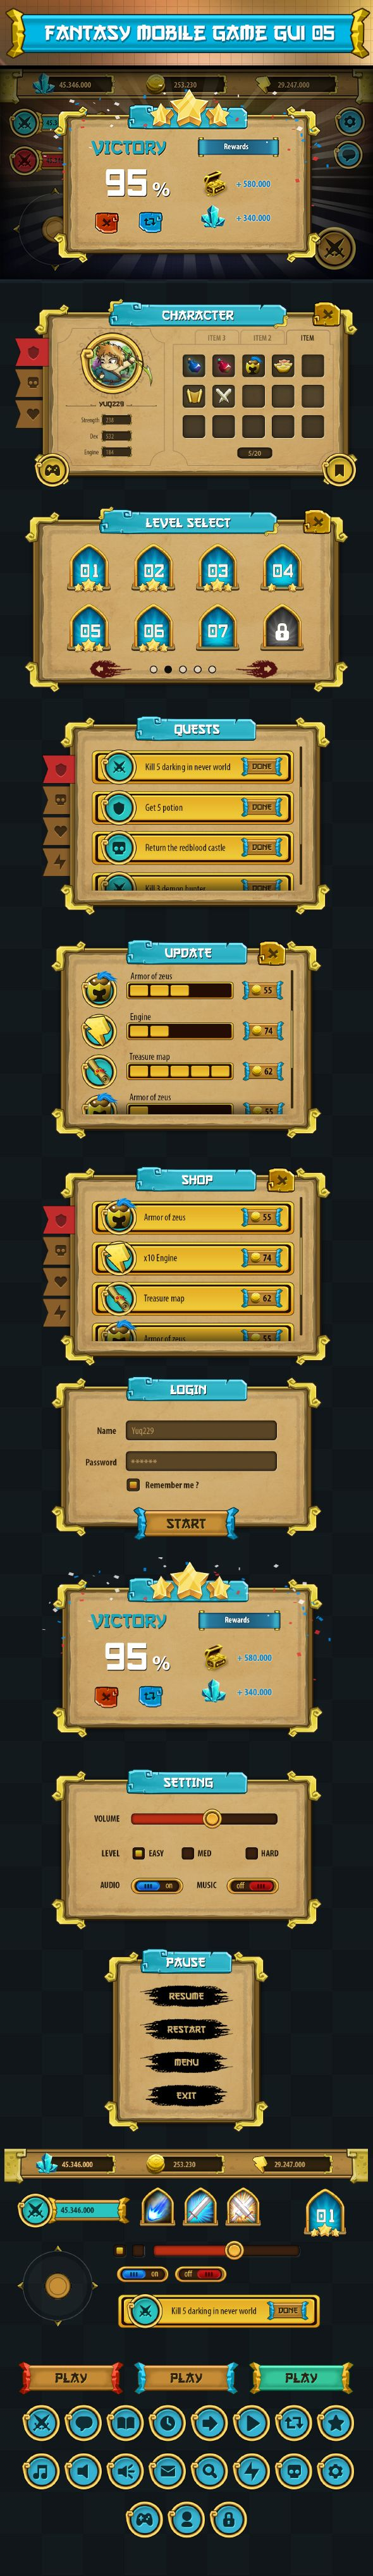 Pack of graphical user interface (GUI) to make mobile game.